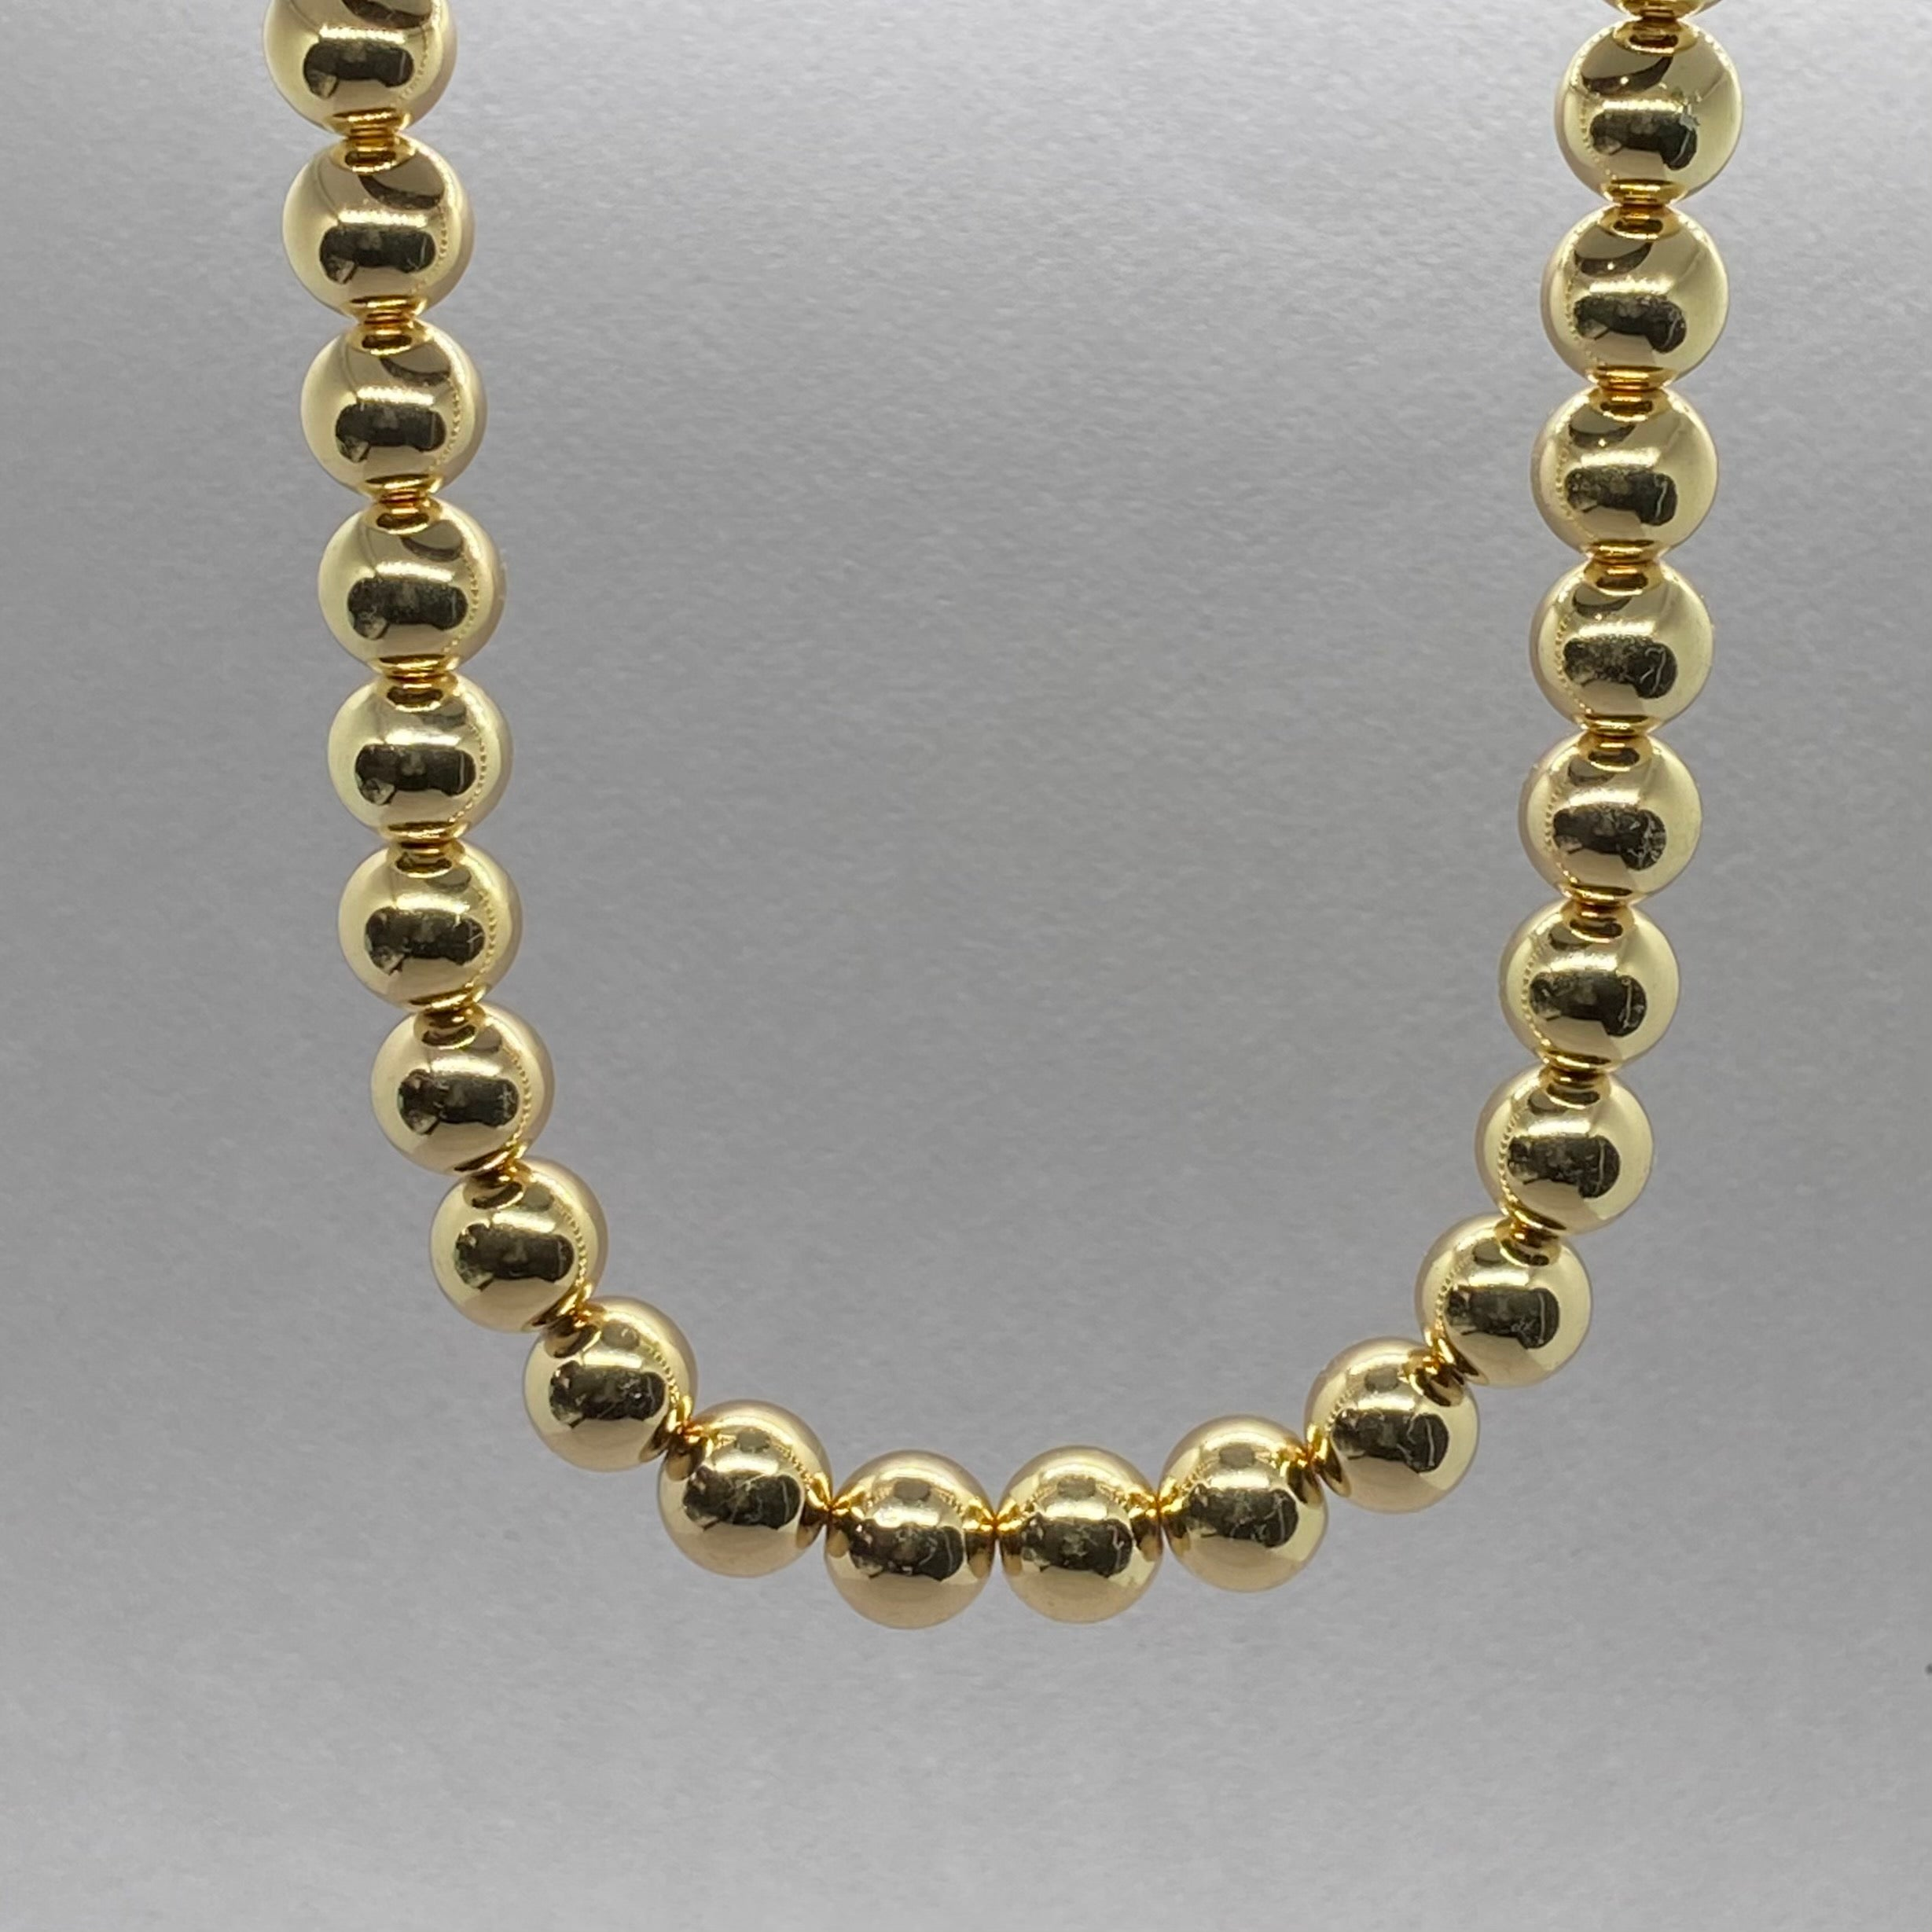 GOLD BEAD STATEMENT NECKLACE